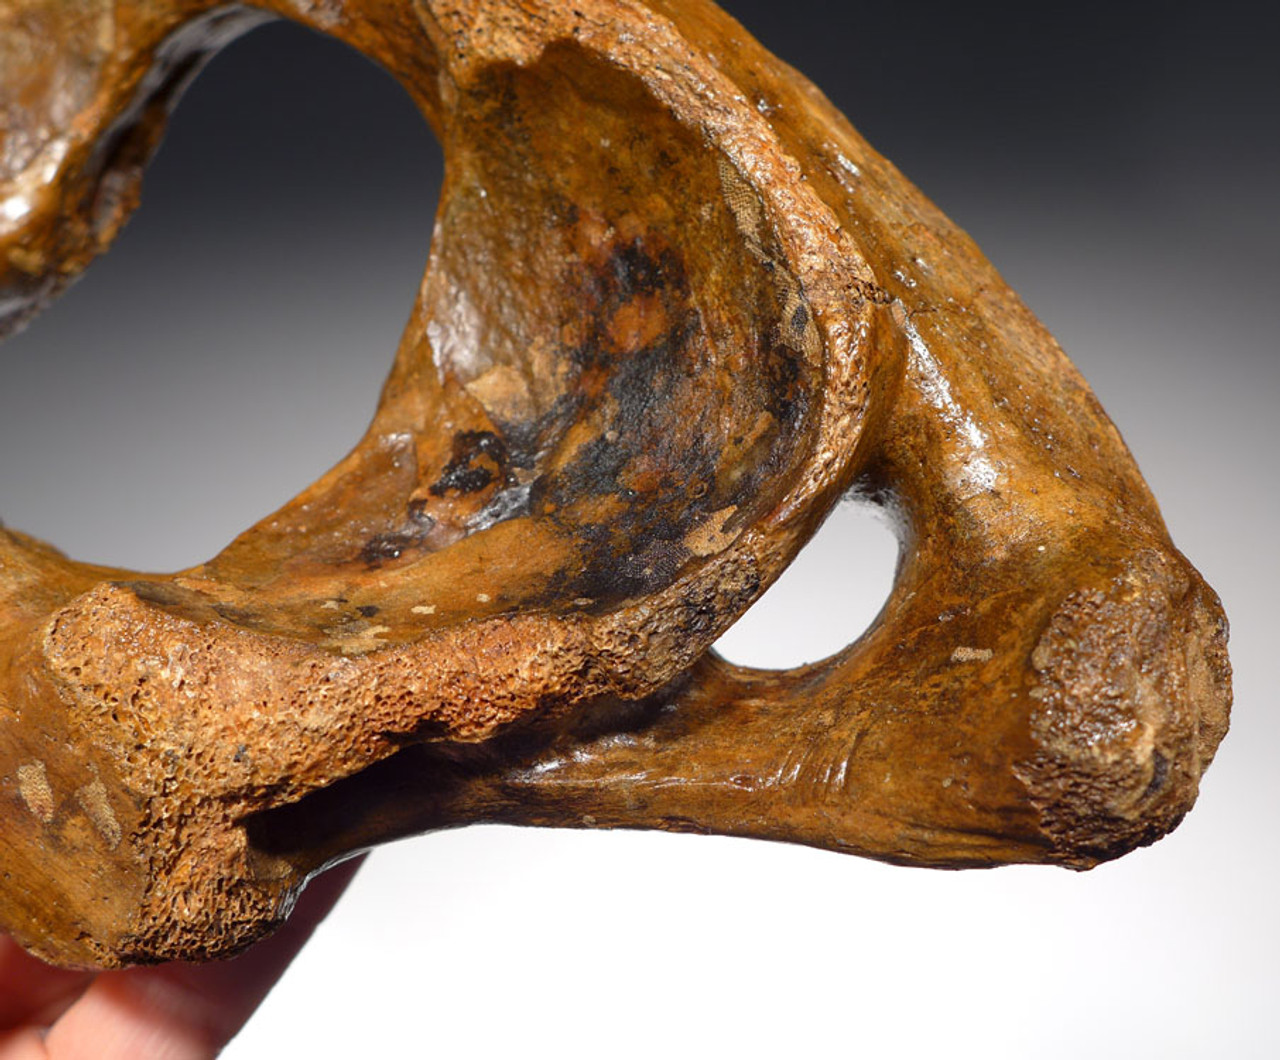 LMX116 - INTACT WOOLLY MAMMOTH ATLAS NECK VERTEBRA WITH FINE PRESERVATION